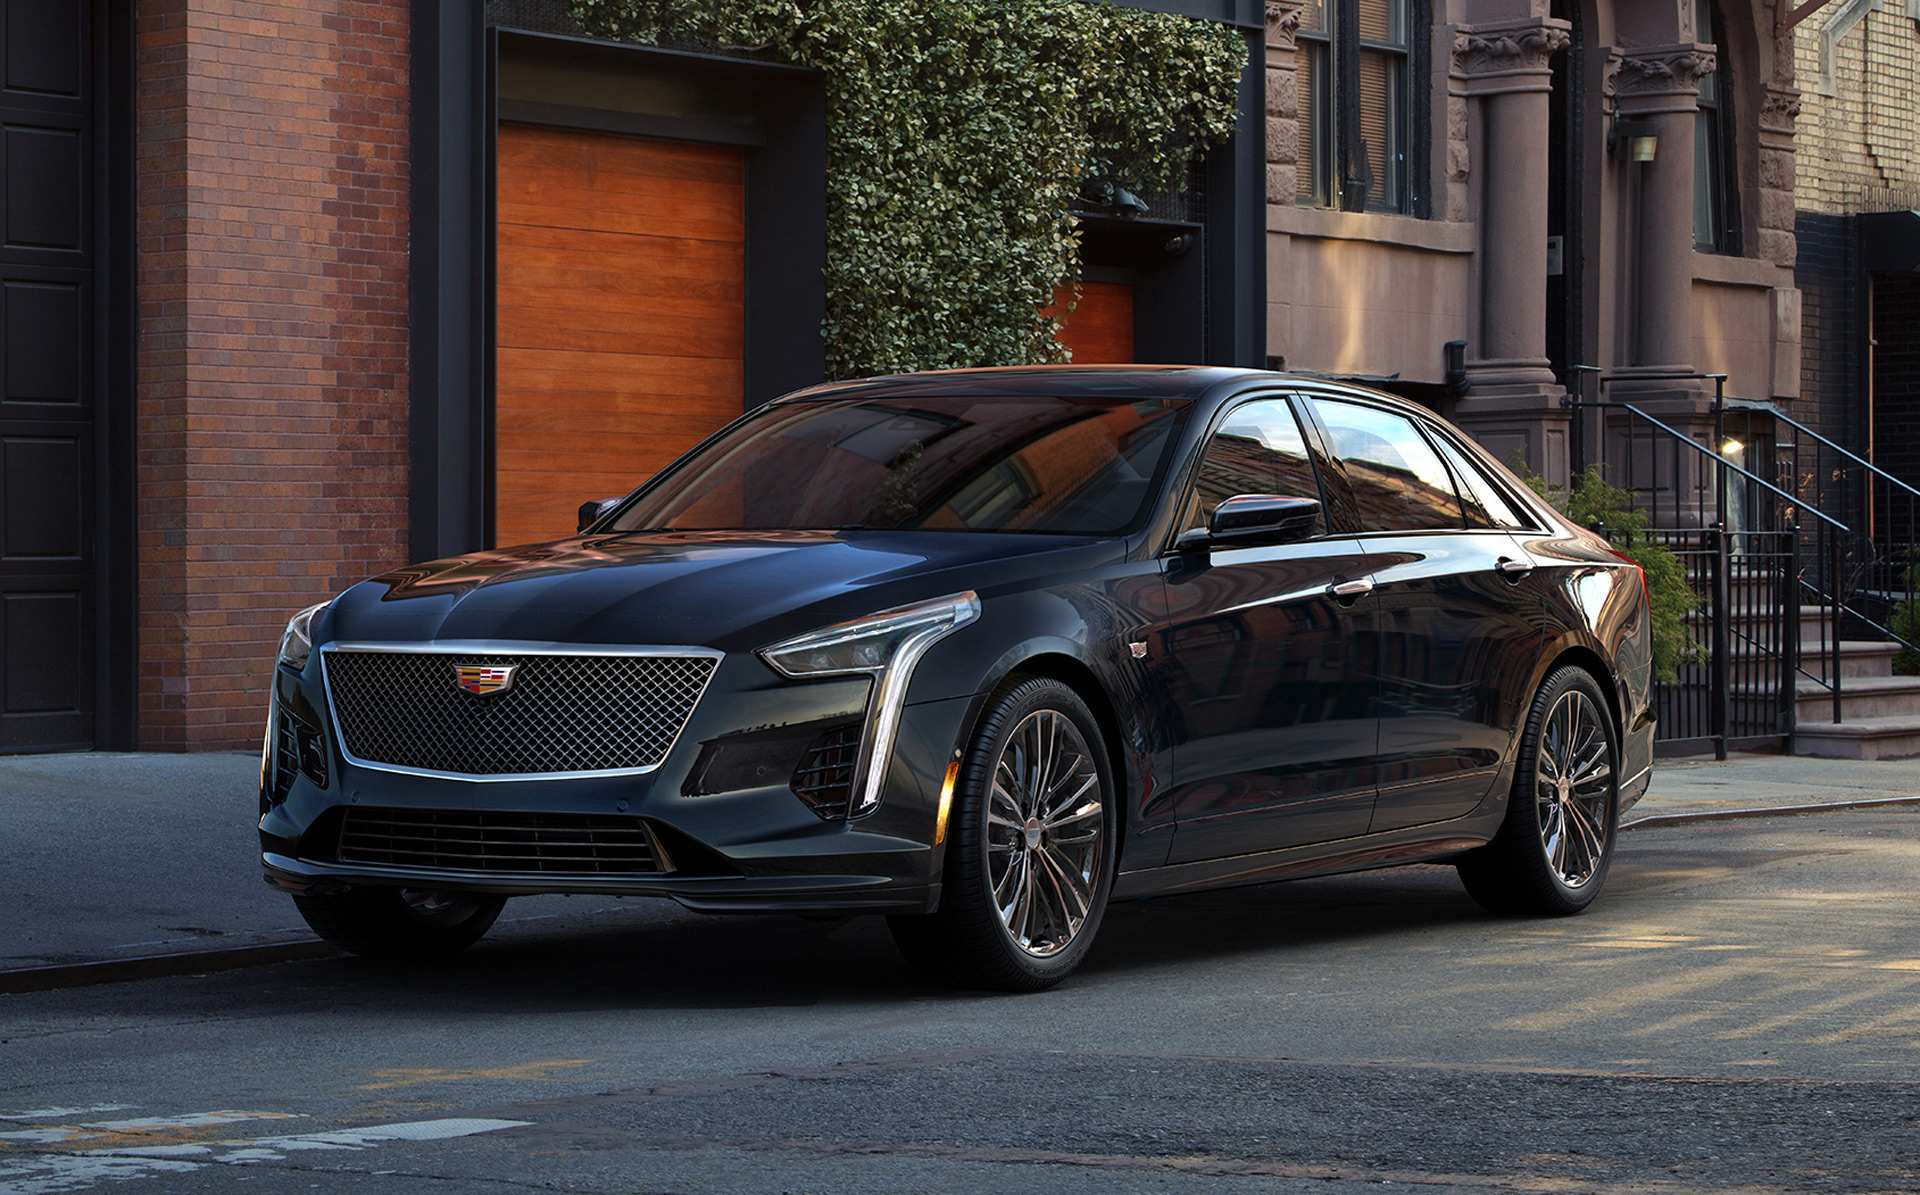 93 Concept of Chevy Impala 2020 Performance and New Engine by Chevy Impala 2020